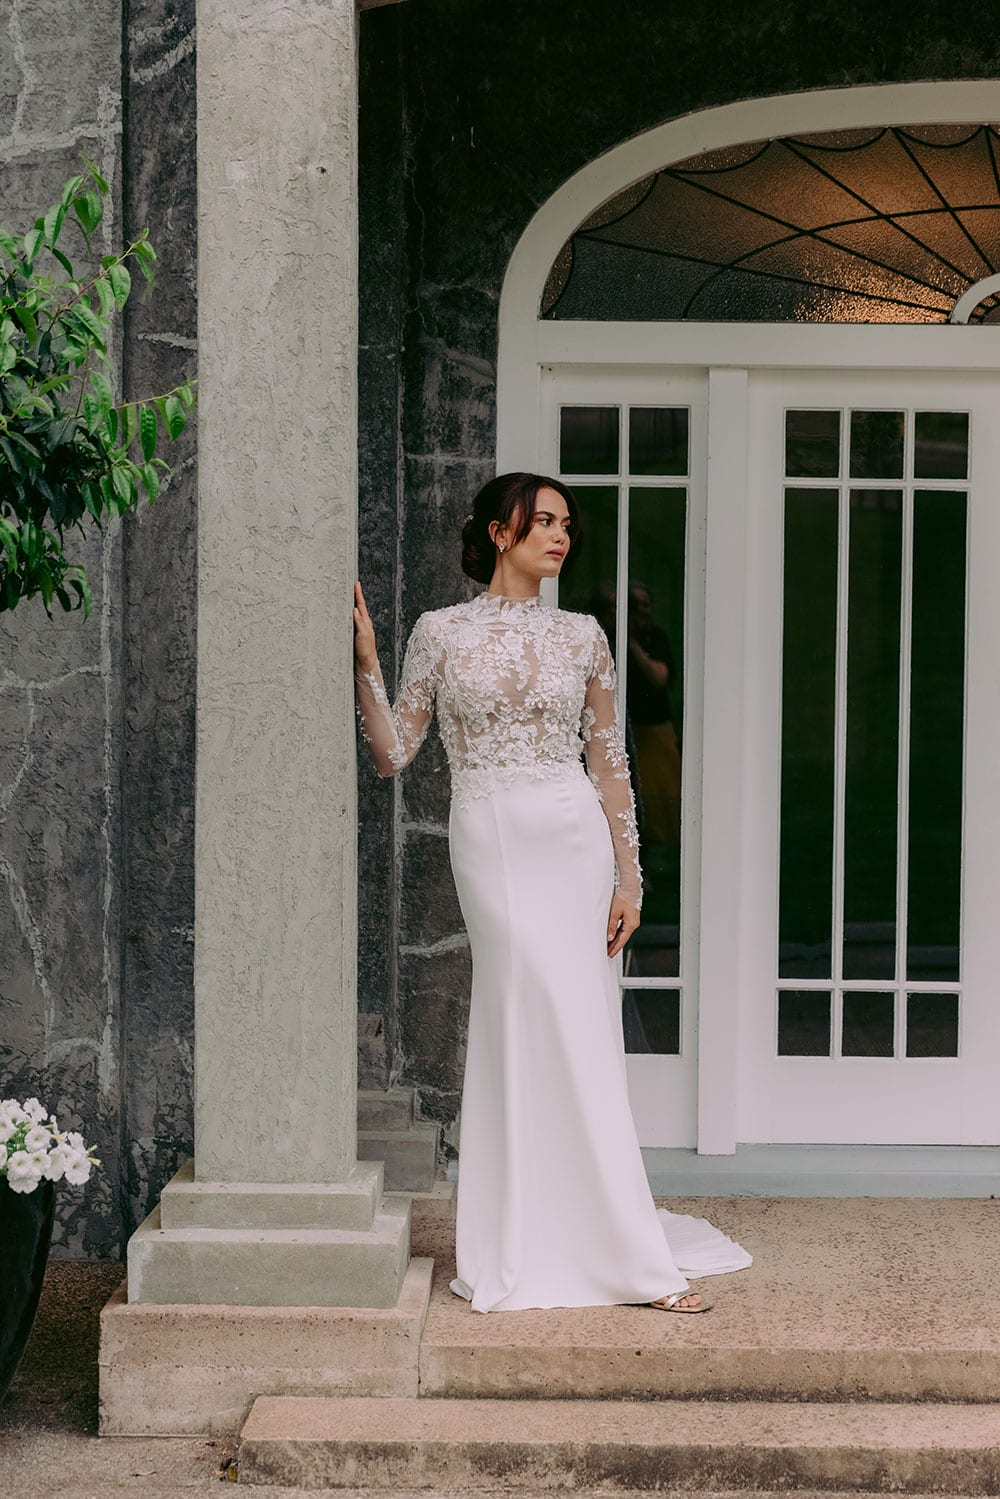 Moana Wedding gown from Vinka Design - Spectacular wedding dress perfect for the modern bride who still wants a classic spark! 3D lace embroidery complemented by a high neckline, fitted sleeves, and stunning low back into a flare train. Model wearing gown showing full length of dress.